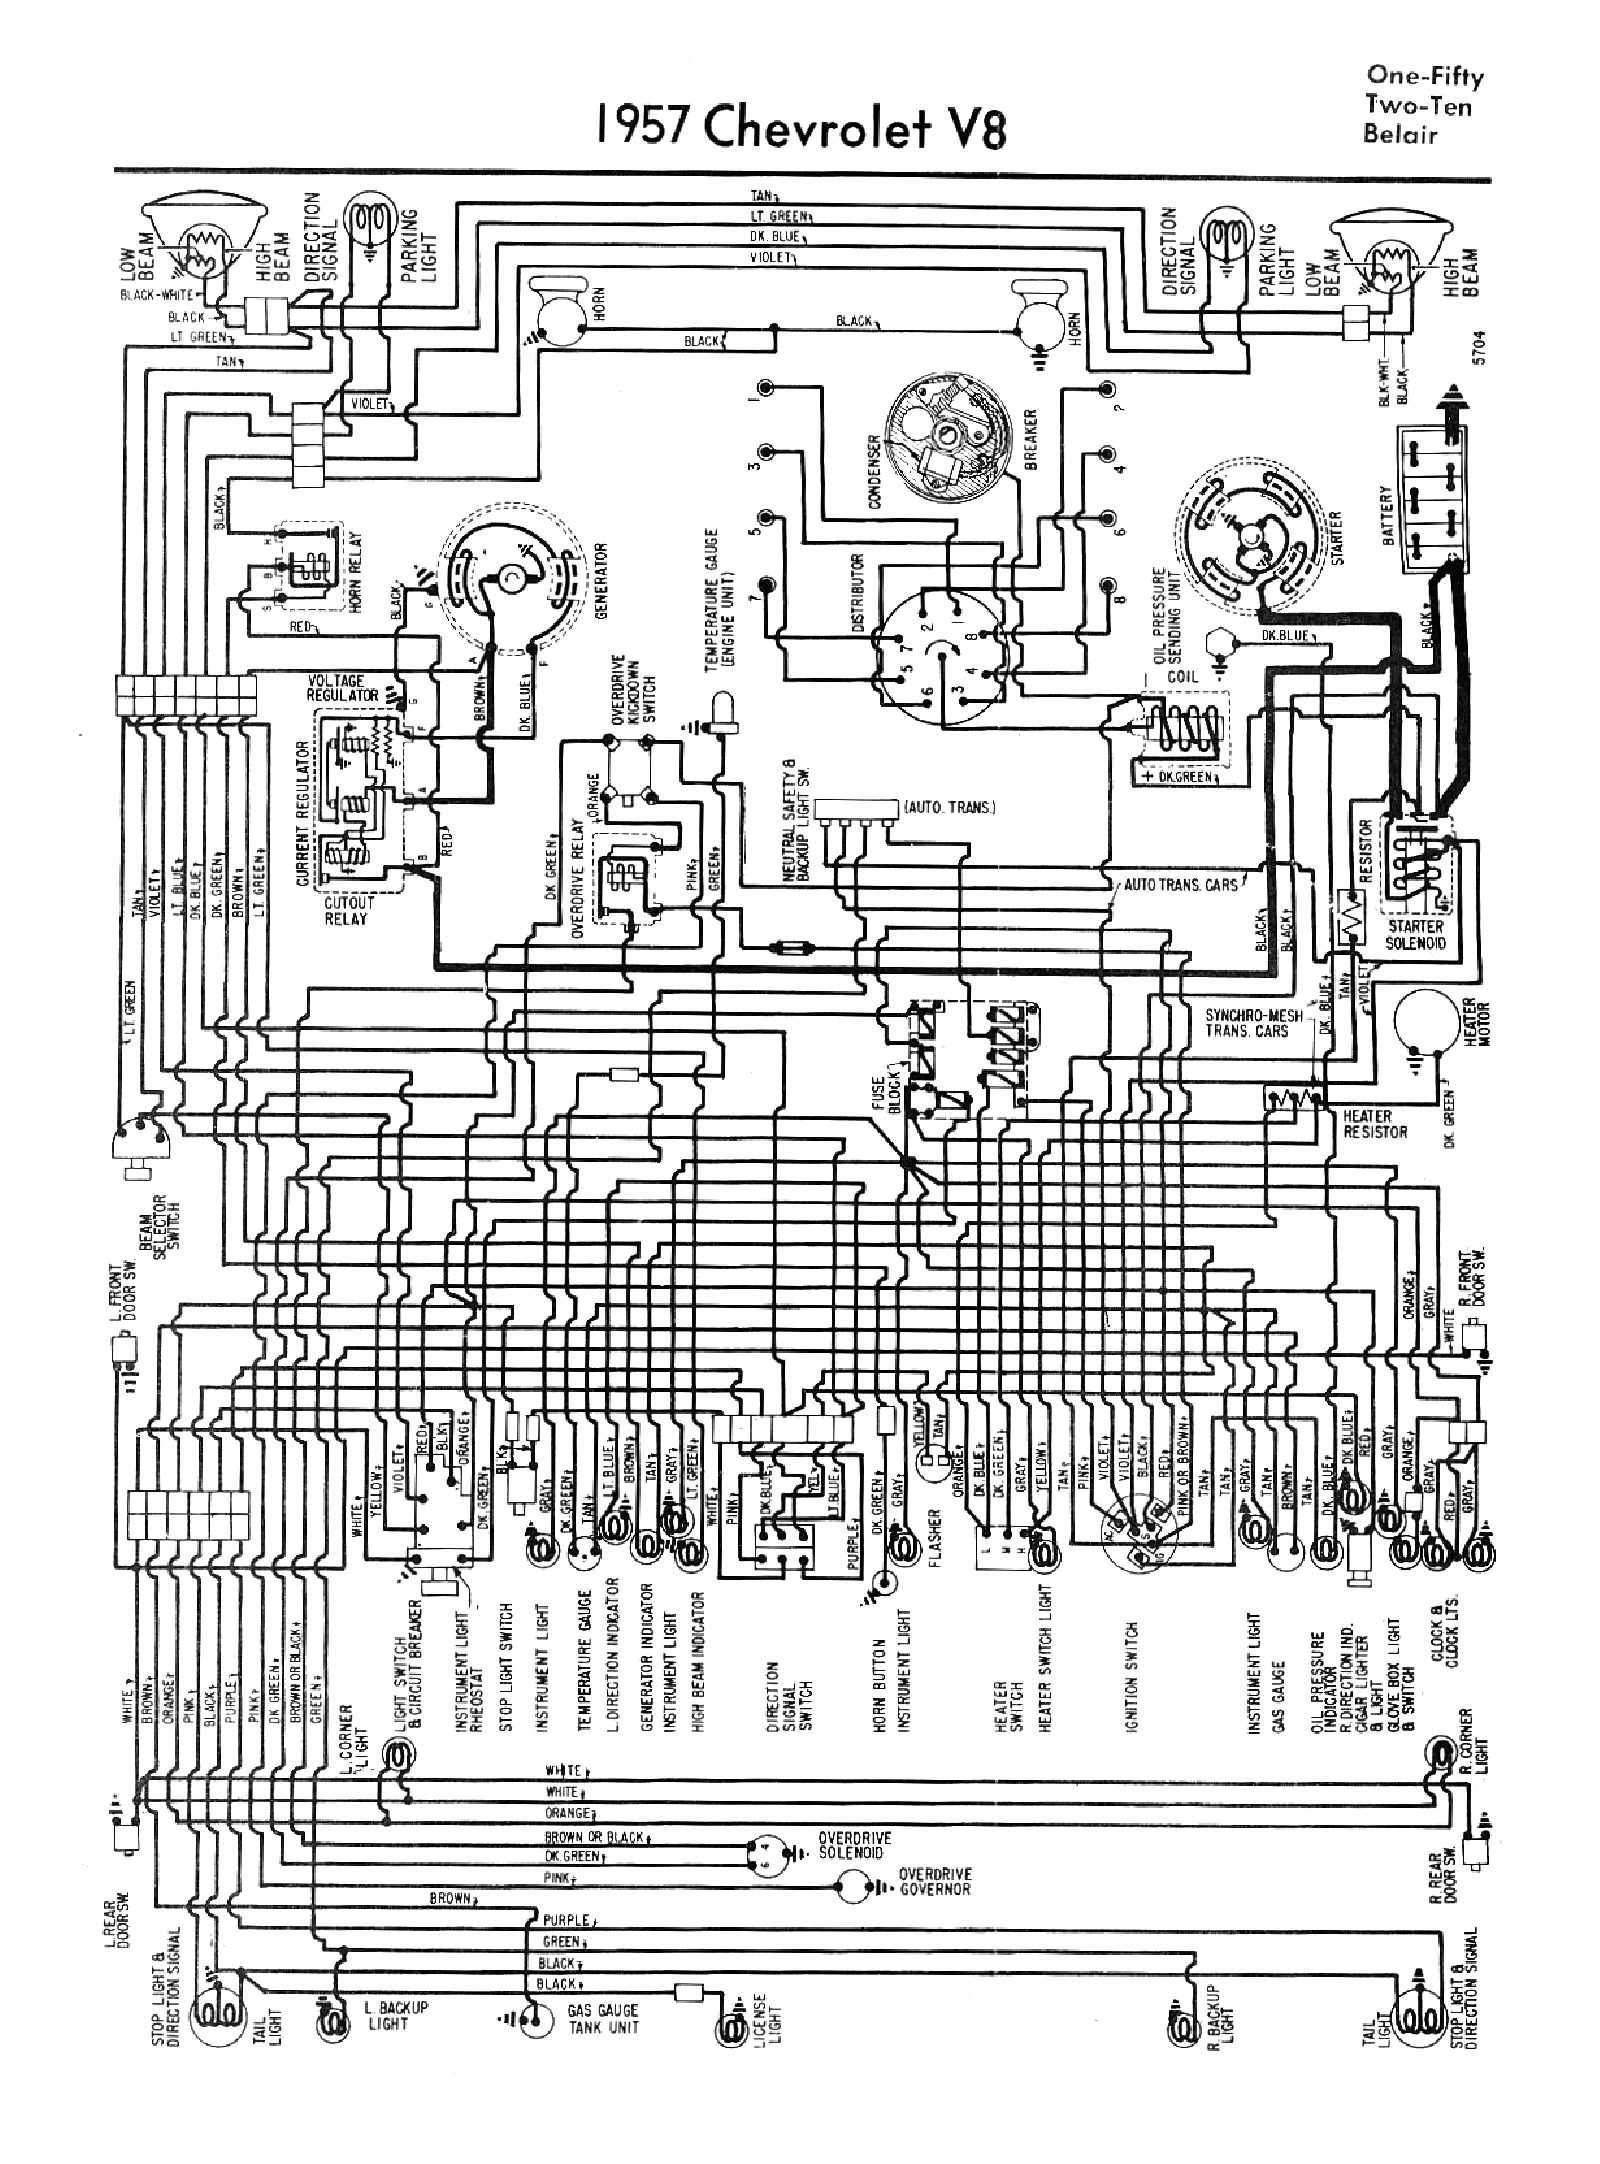 1977 Chevy Truck Wiring Diagram Another Blog About 1971 Nova Windshield Washer Diagrams Light Wire Free Engine Image Electrical